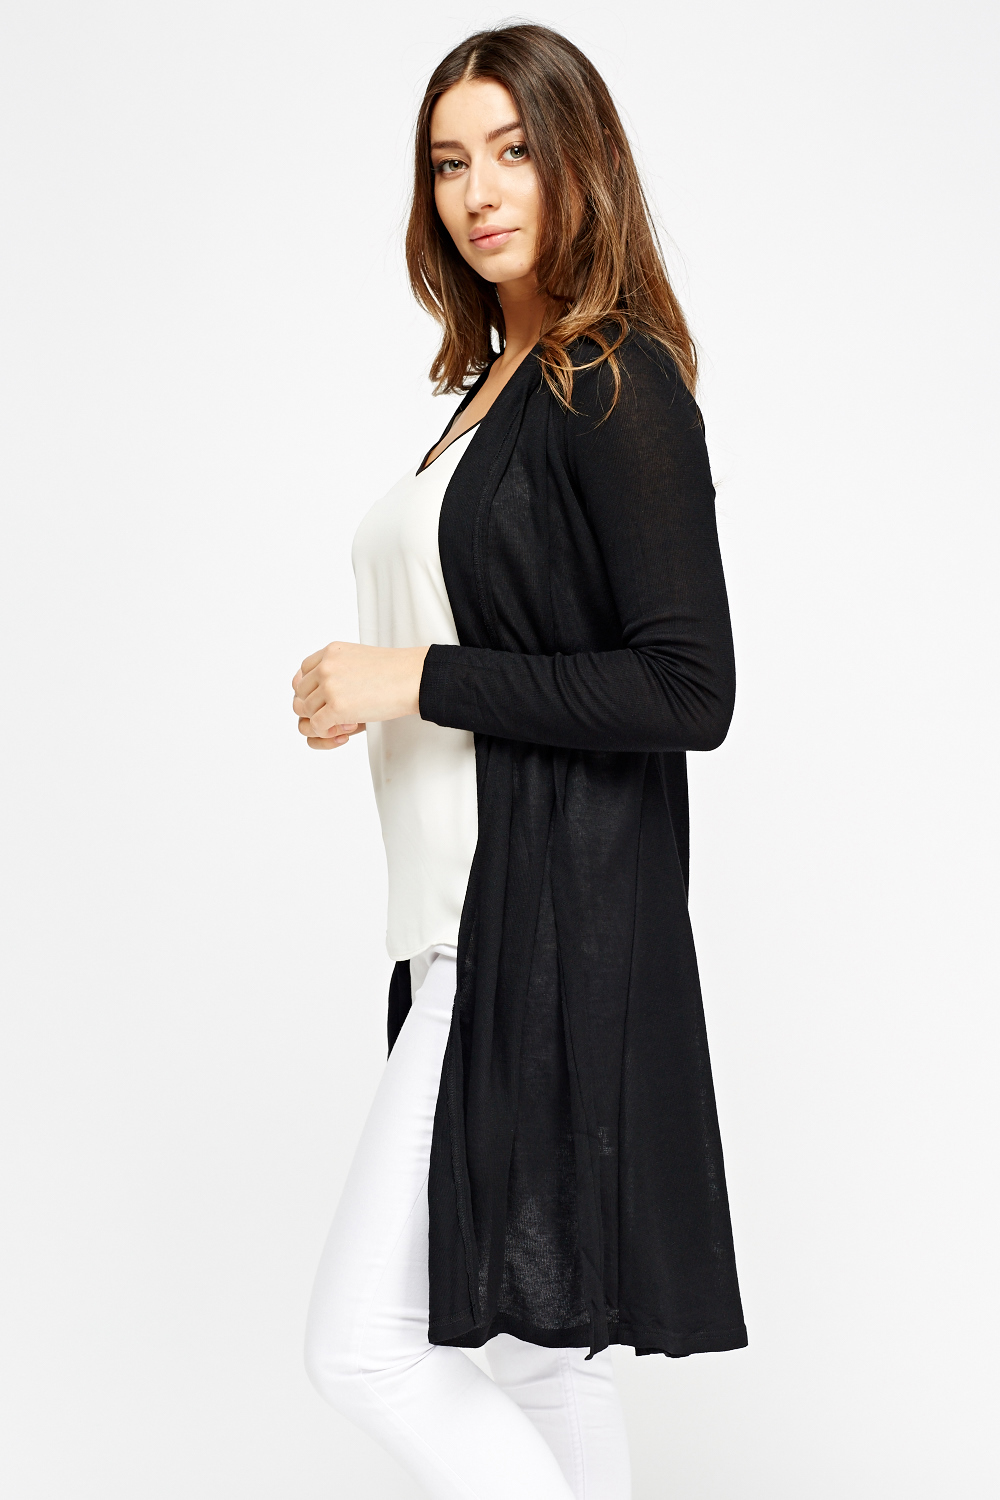 Tie Up Black Long Cardigan - Just £5